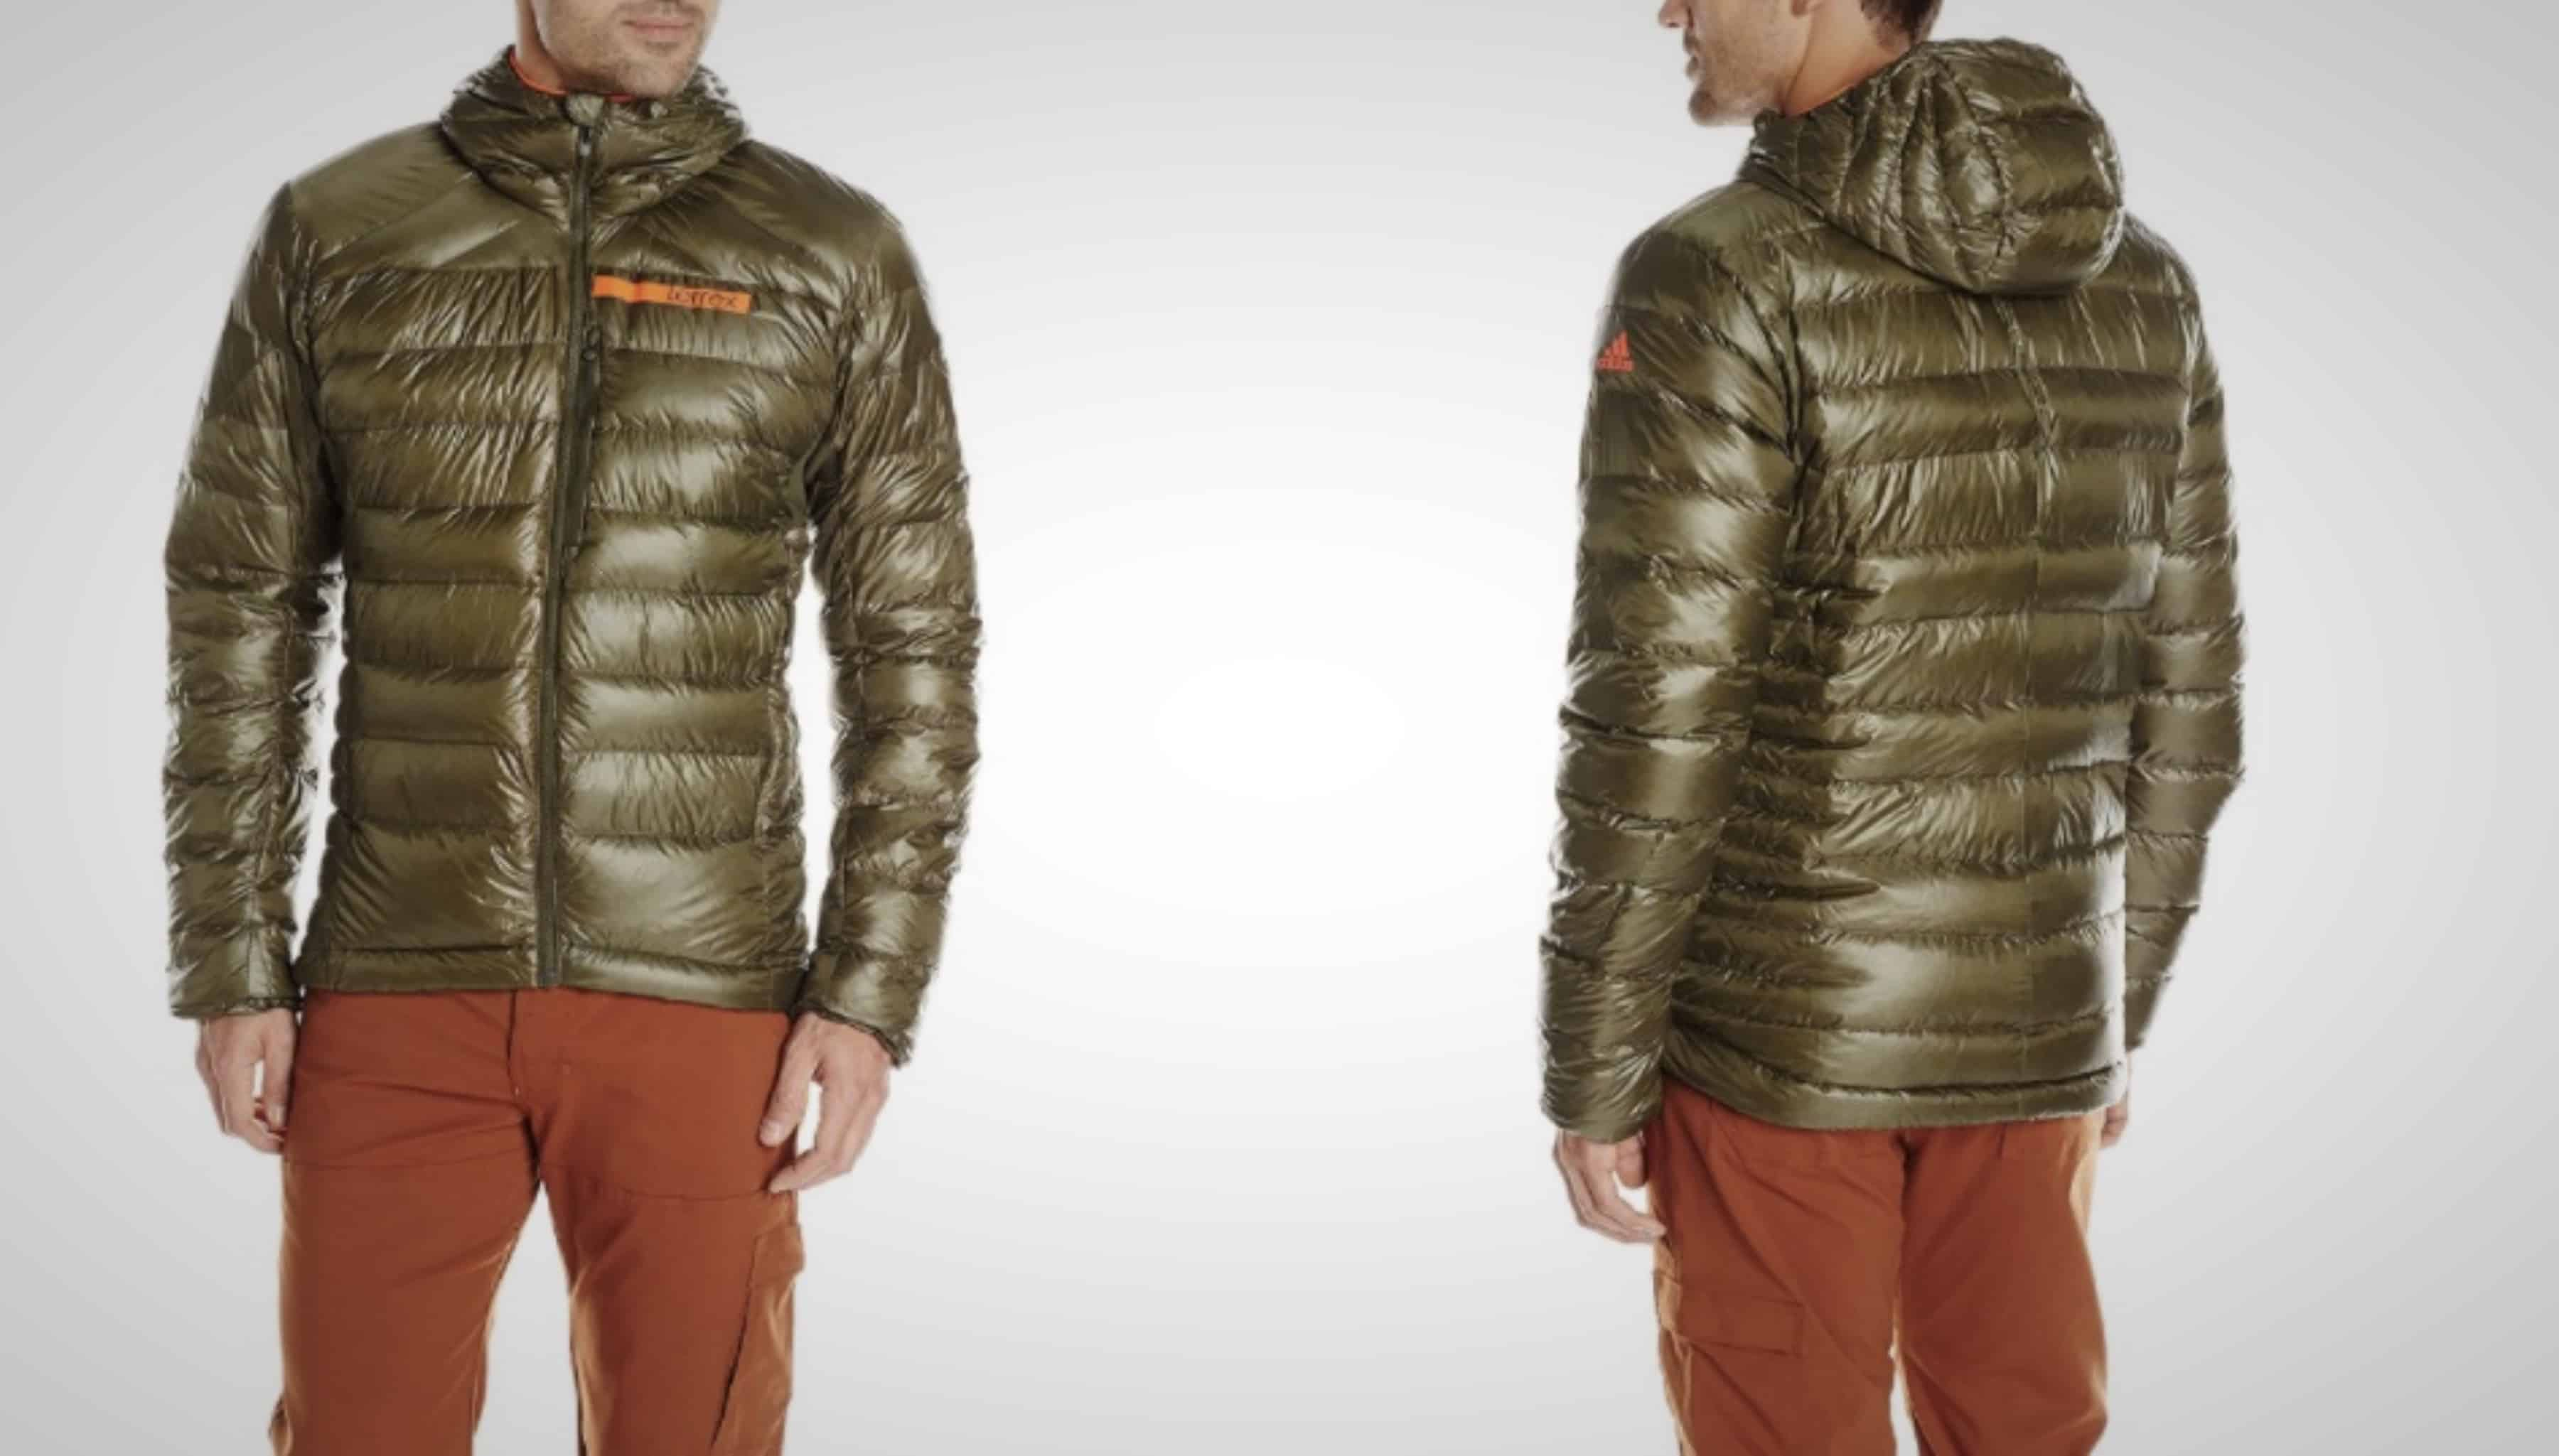 Adidas Terrex Men's Down Jacket